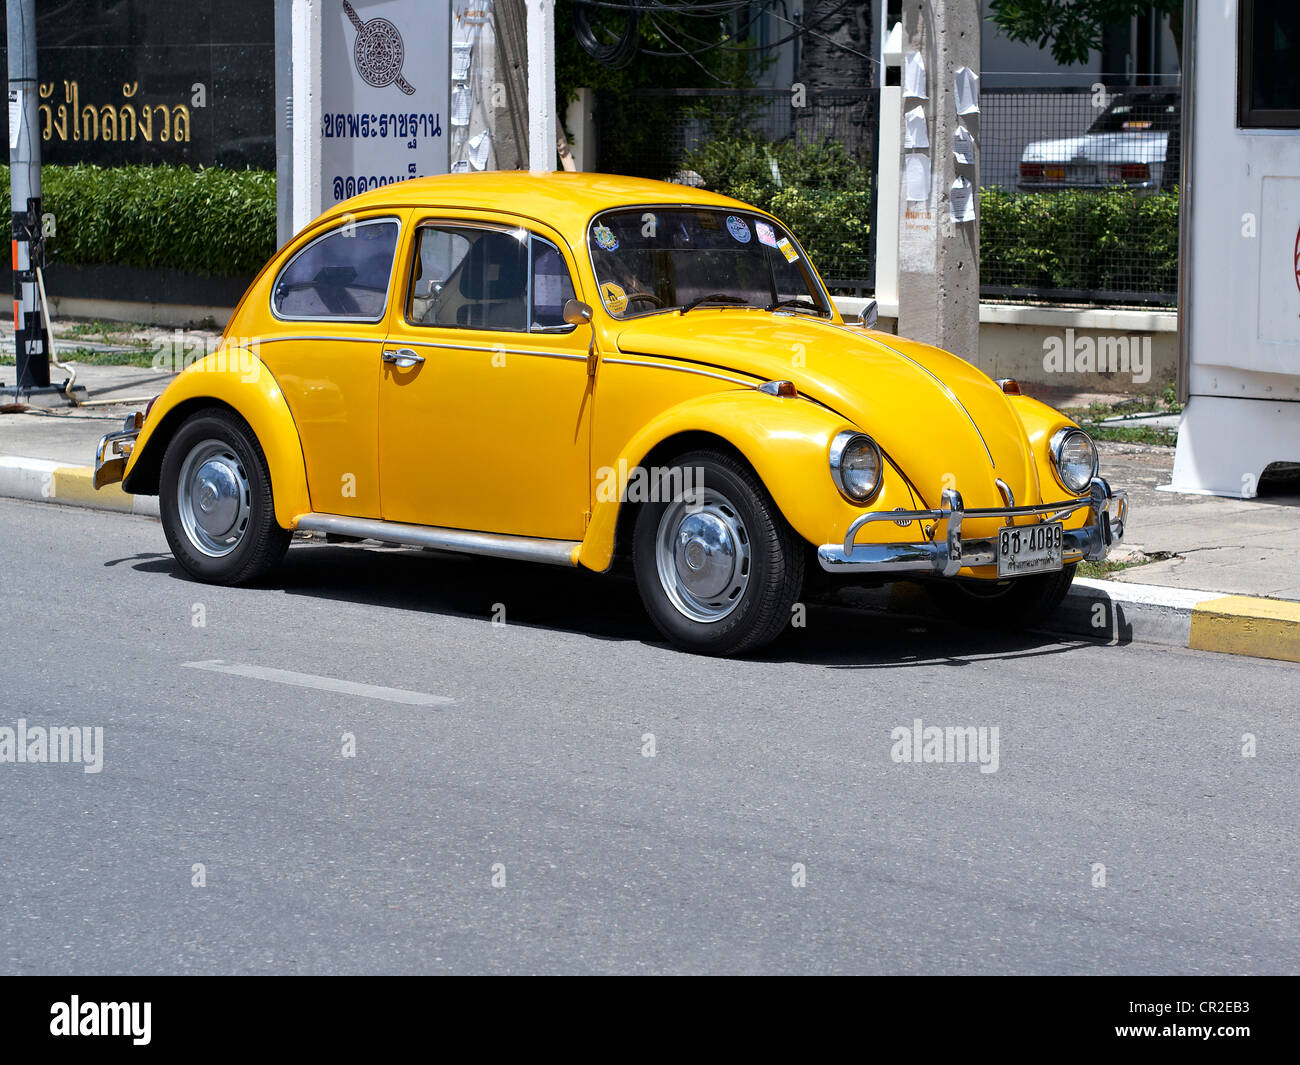 kafer vw flevoland netherlands of styled lot image public parked volkswagen classic editorial yellow july almere parking beetle